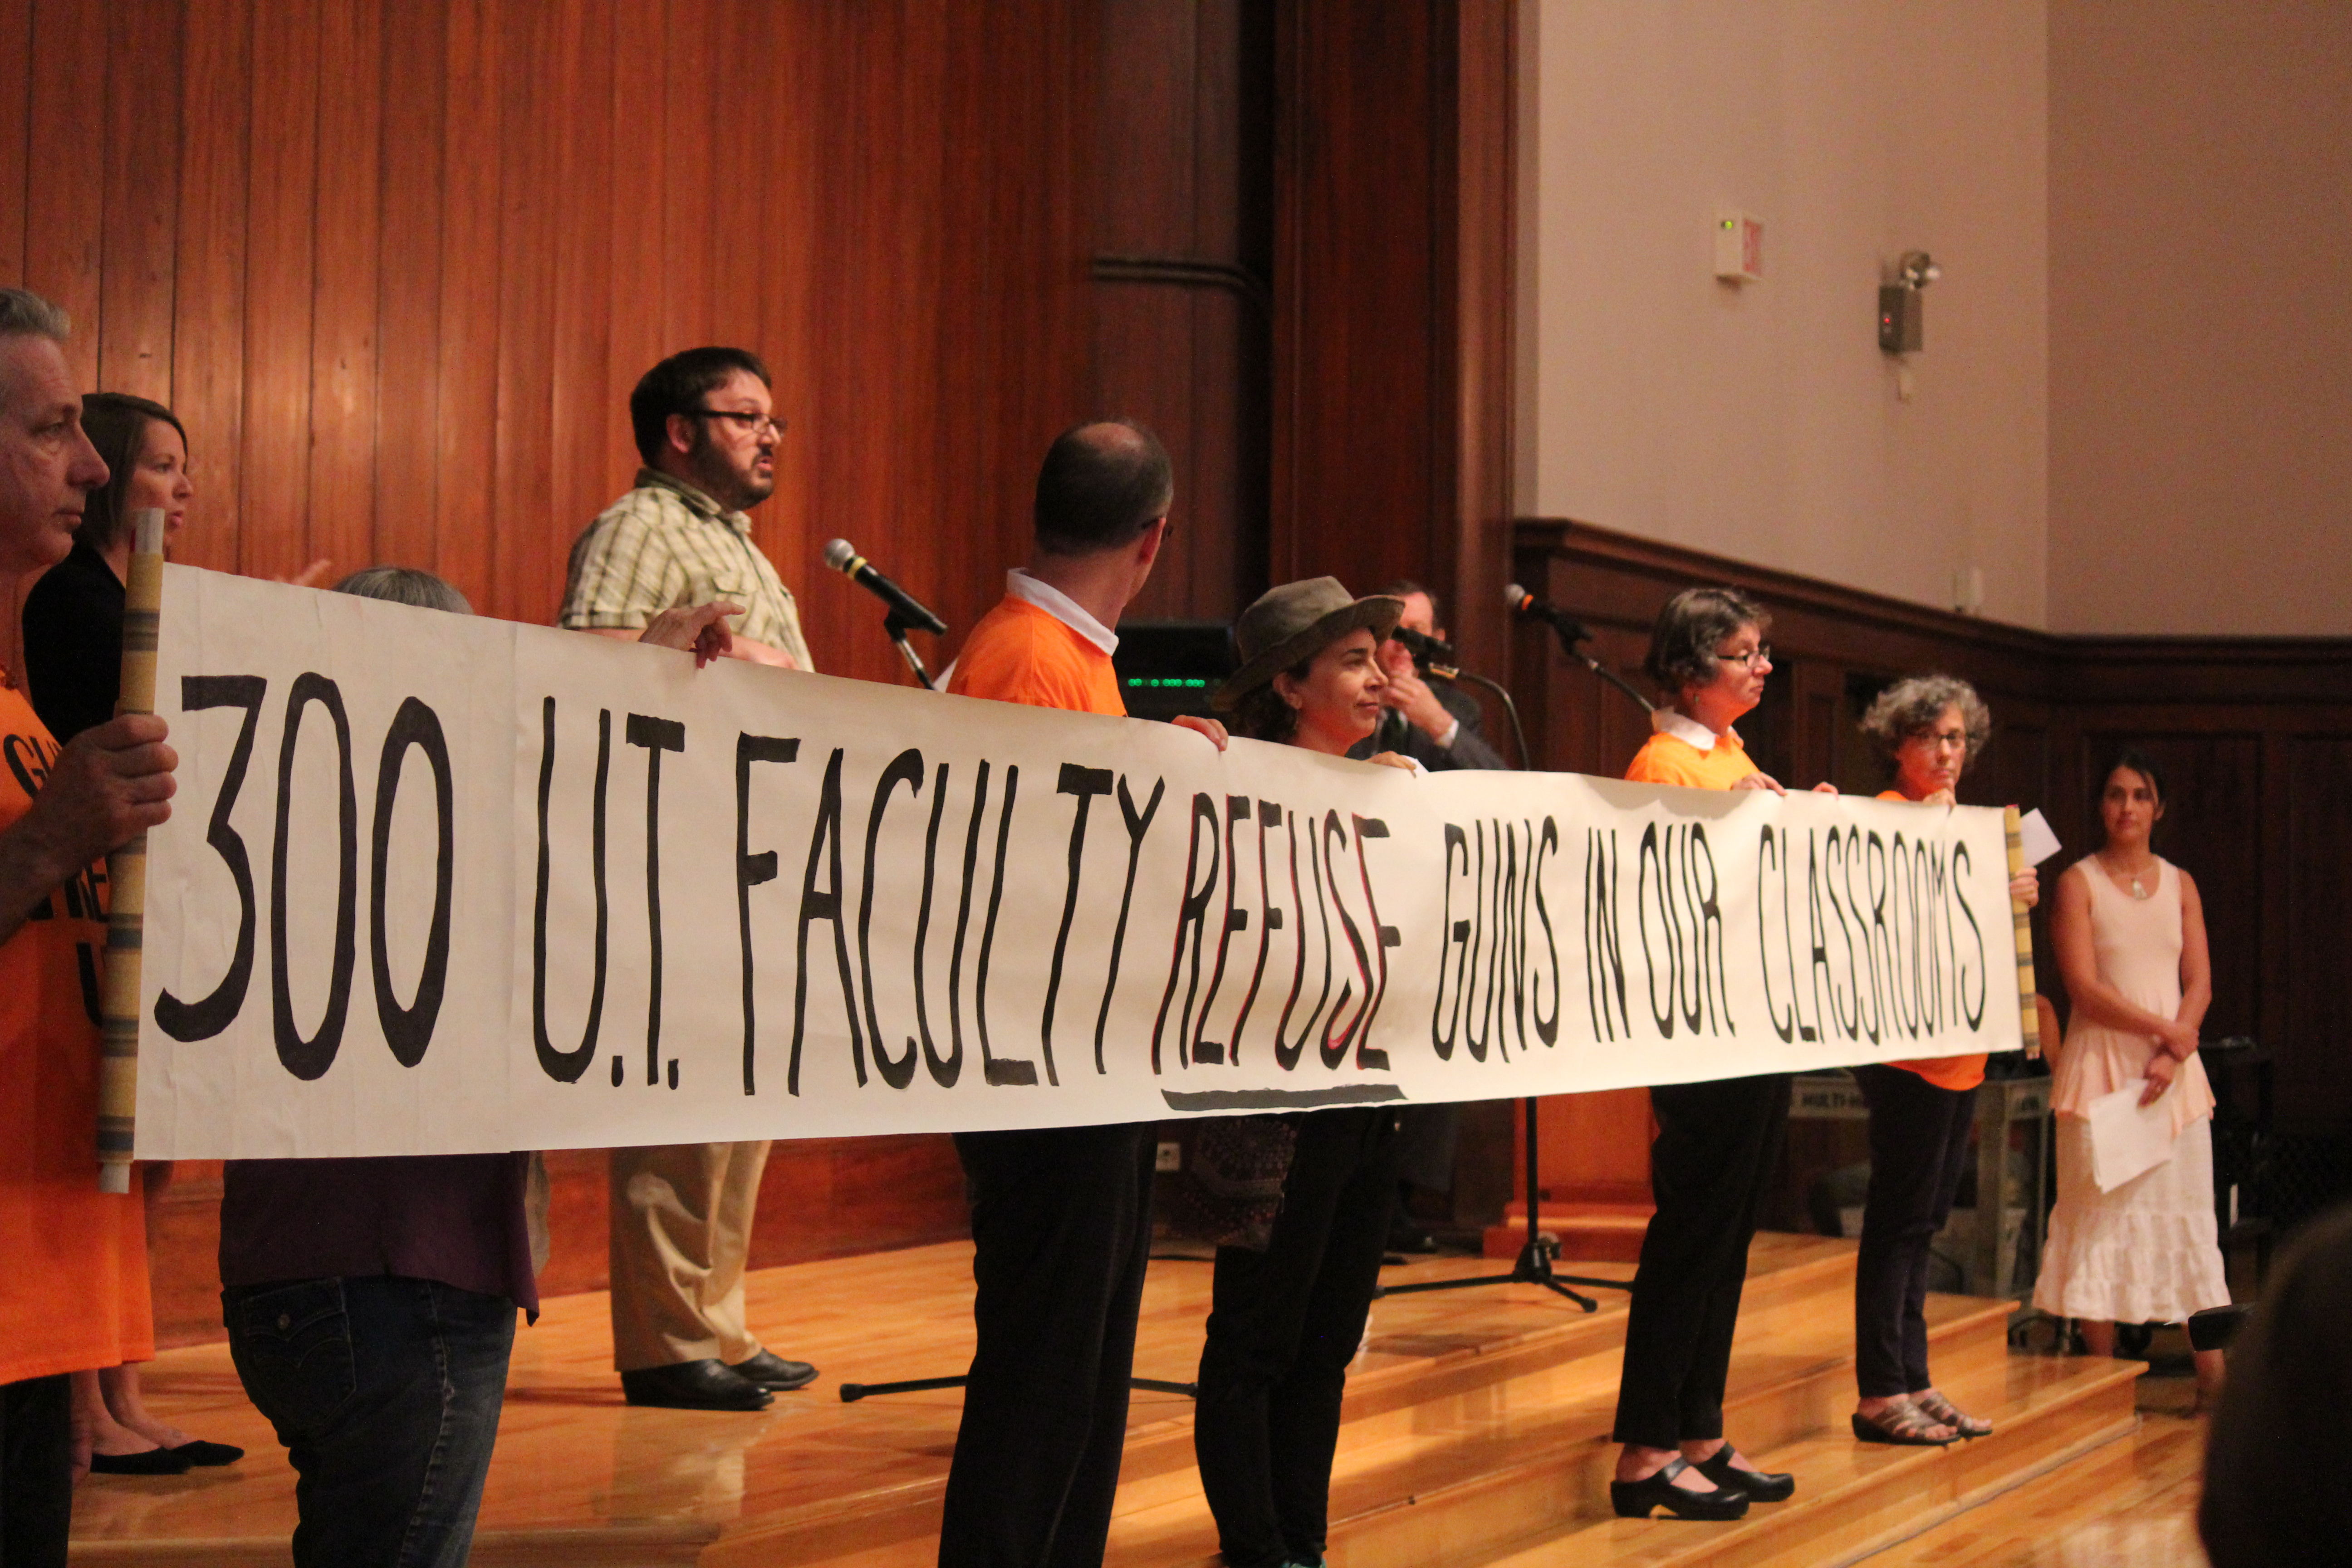 "At the Oct. 5 open carry forum, members of Gun Free UT display a banner that states: ""300 UT Faculty Refuse Guns In Our Classrooms."""